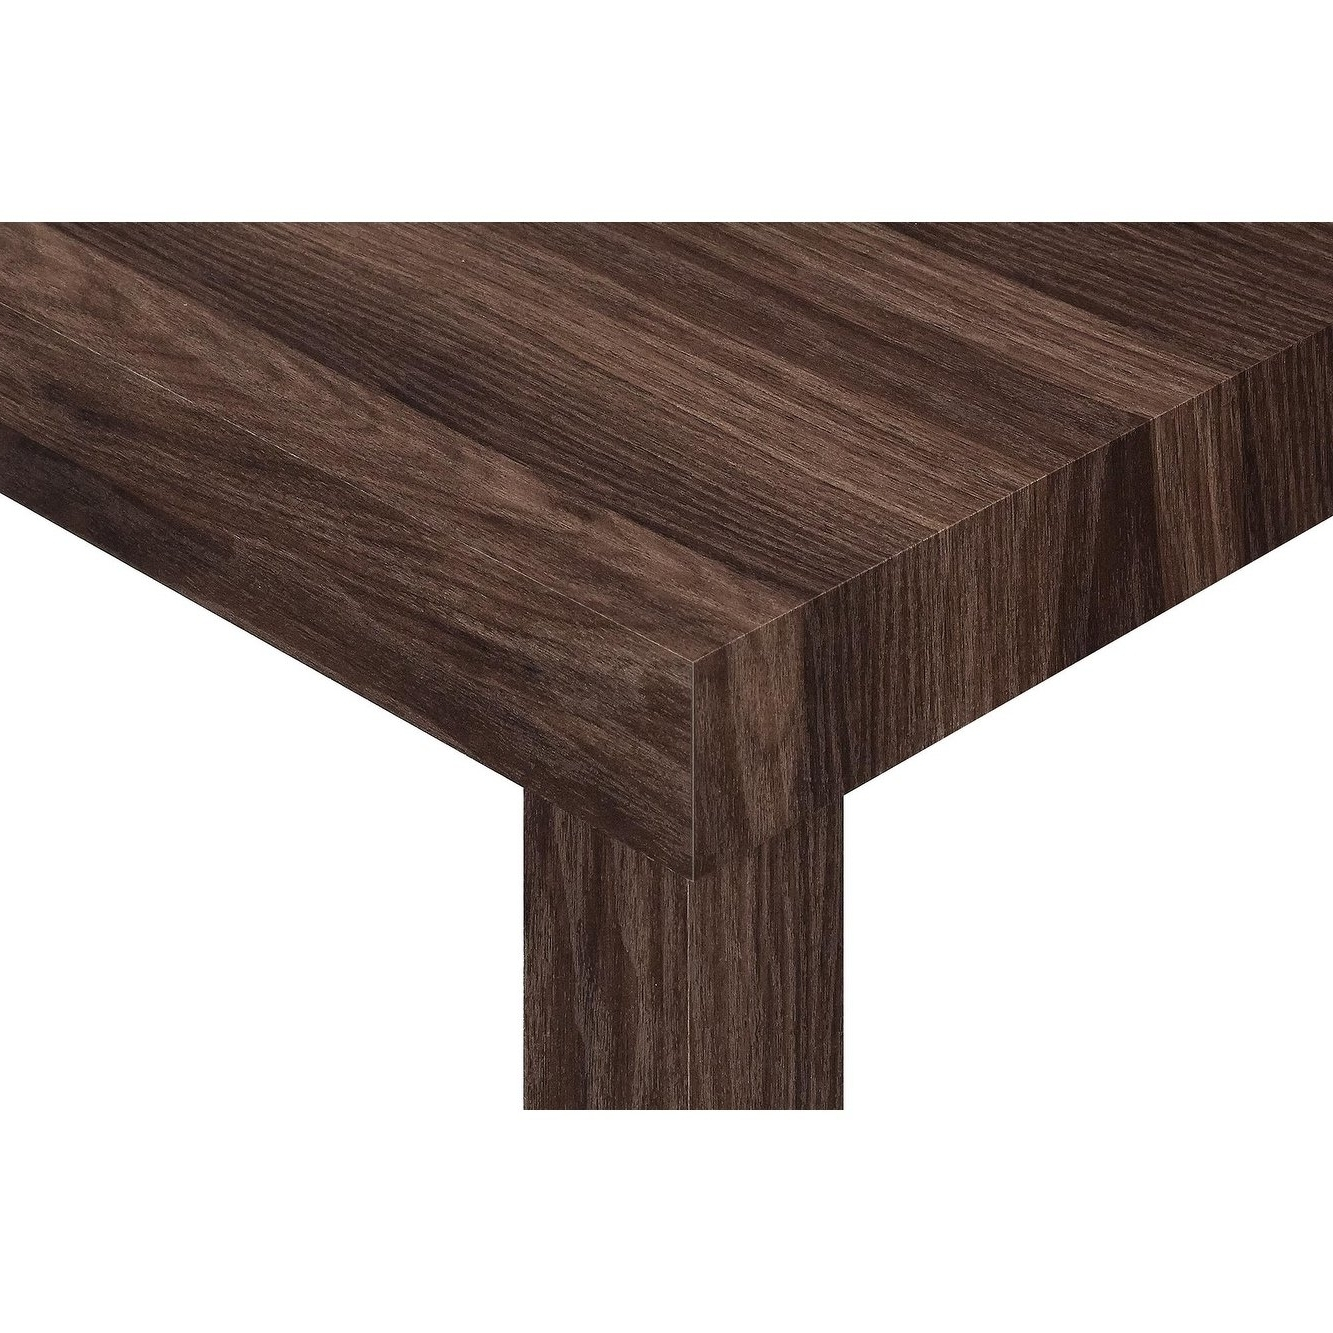 Shop Avenue Greene Jaxon Walnut Coffee Table – Free Shipping Today With Newest Jaxon Cocktail Tables (View 17 of 20)